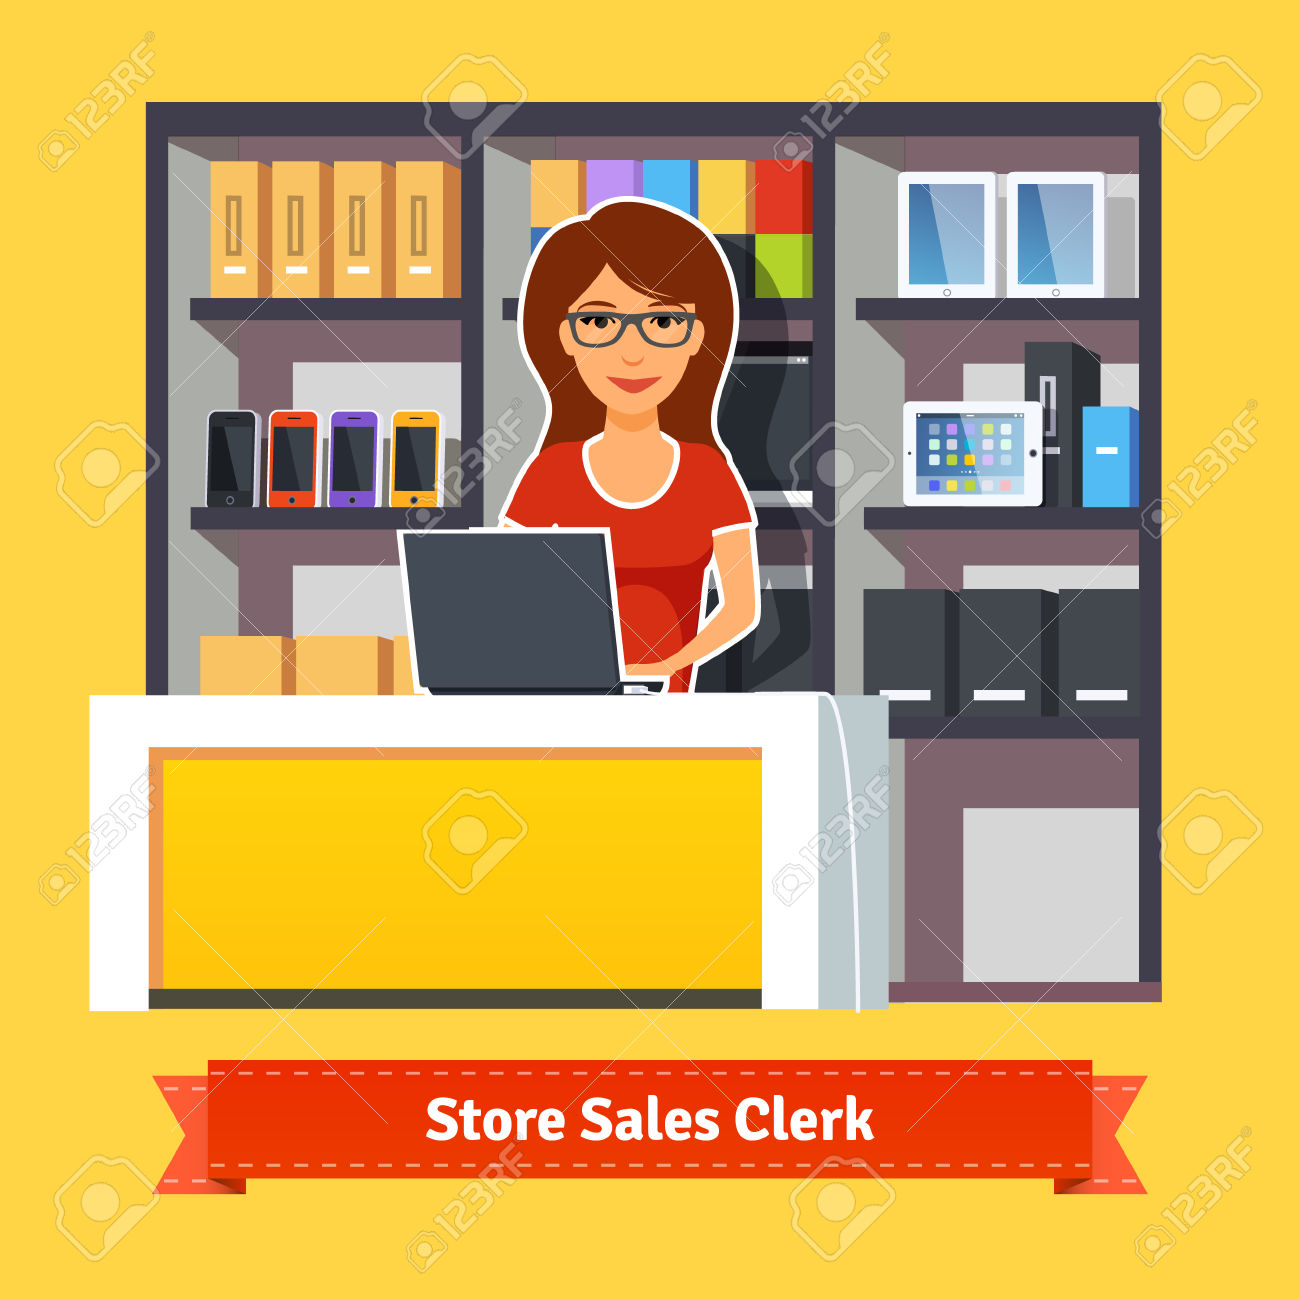 Sales clerk clipart clip royalty free stock 27,934 Sales Woman Stock Illustrations, Cliparts And Royalty Free ... clip royalty free stock